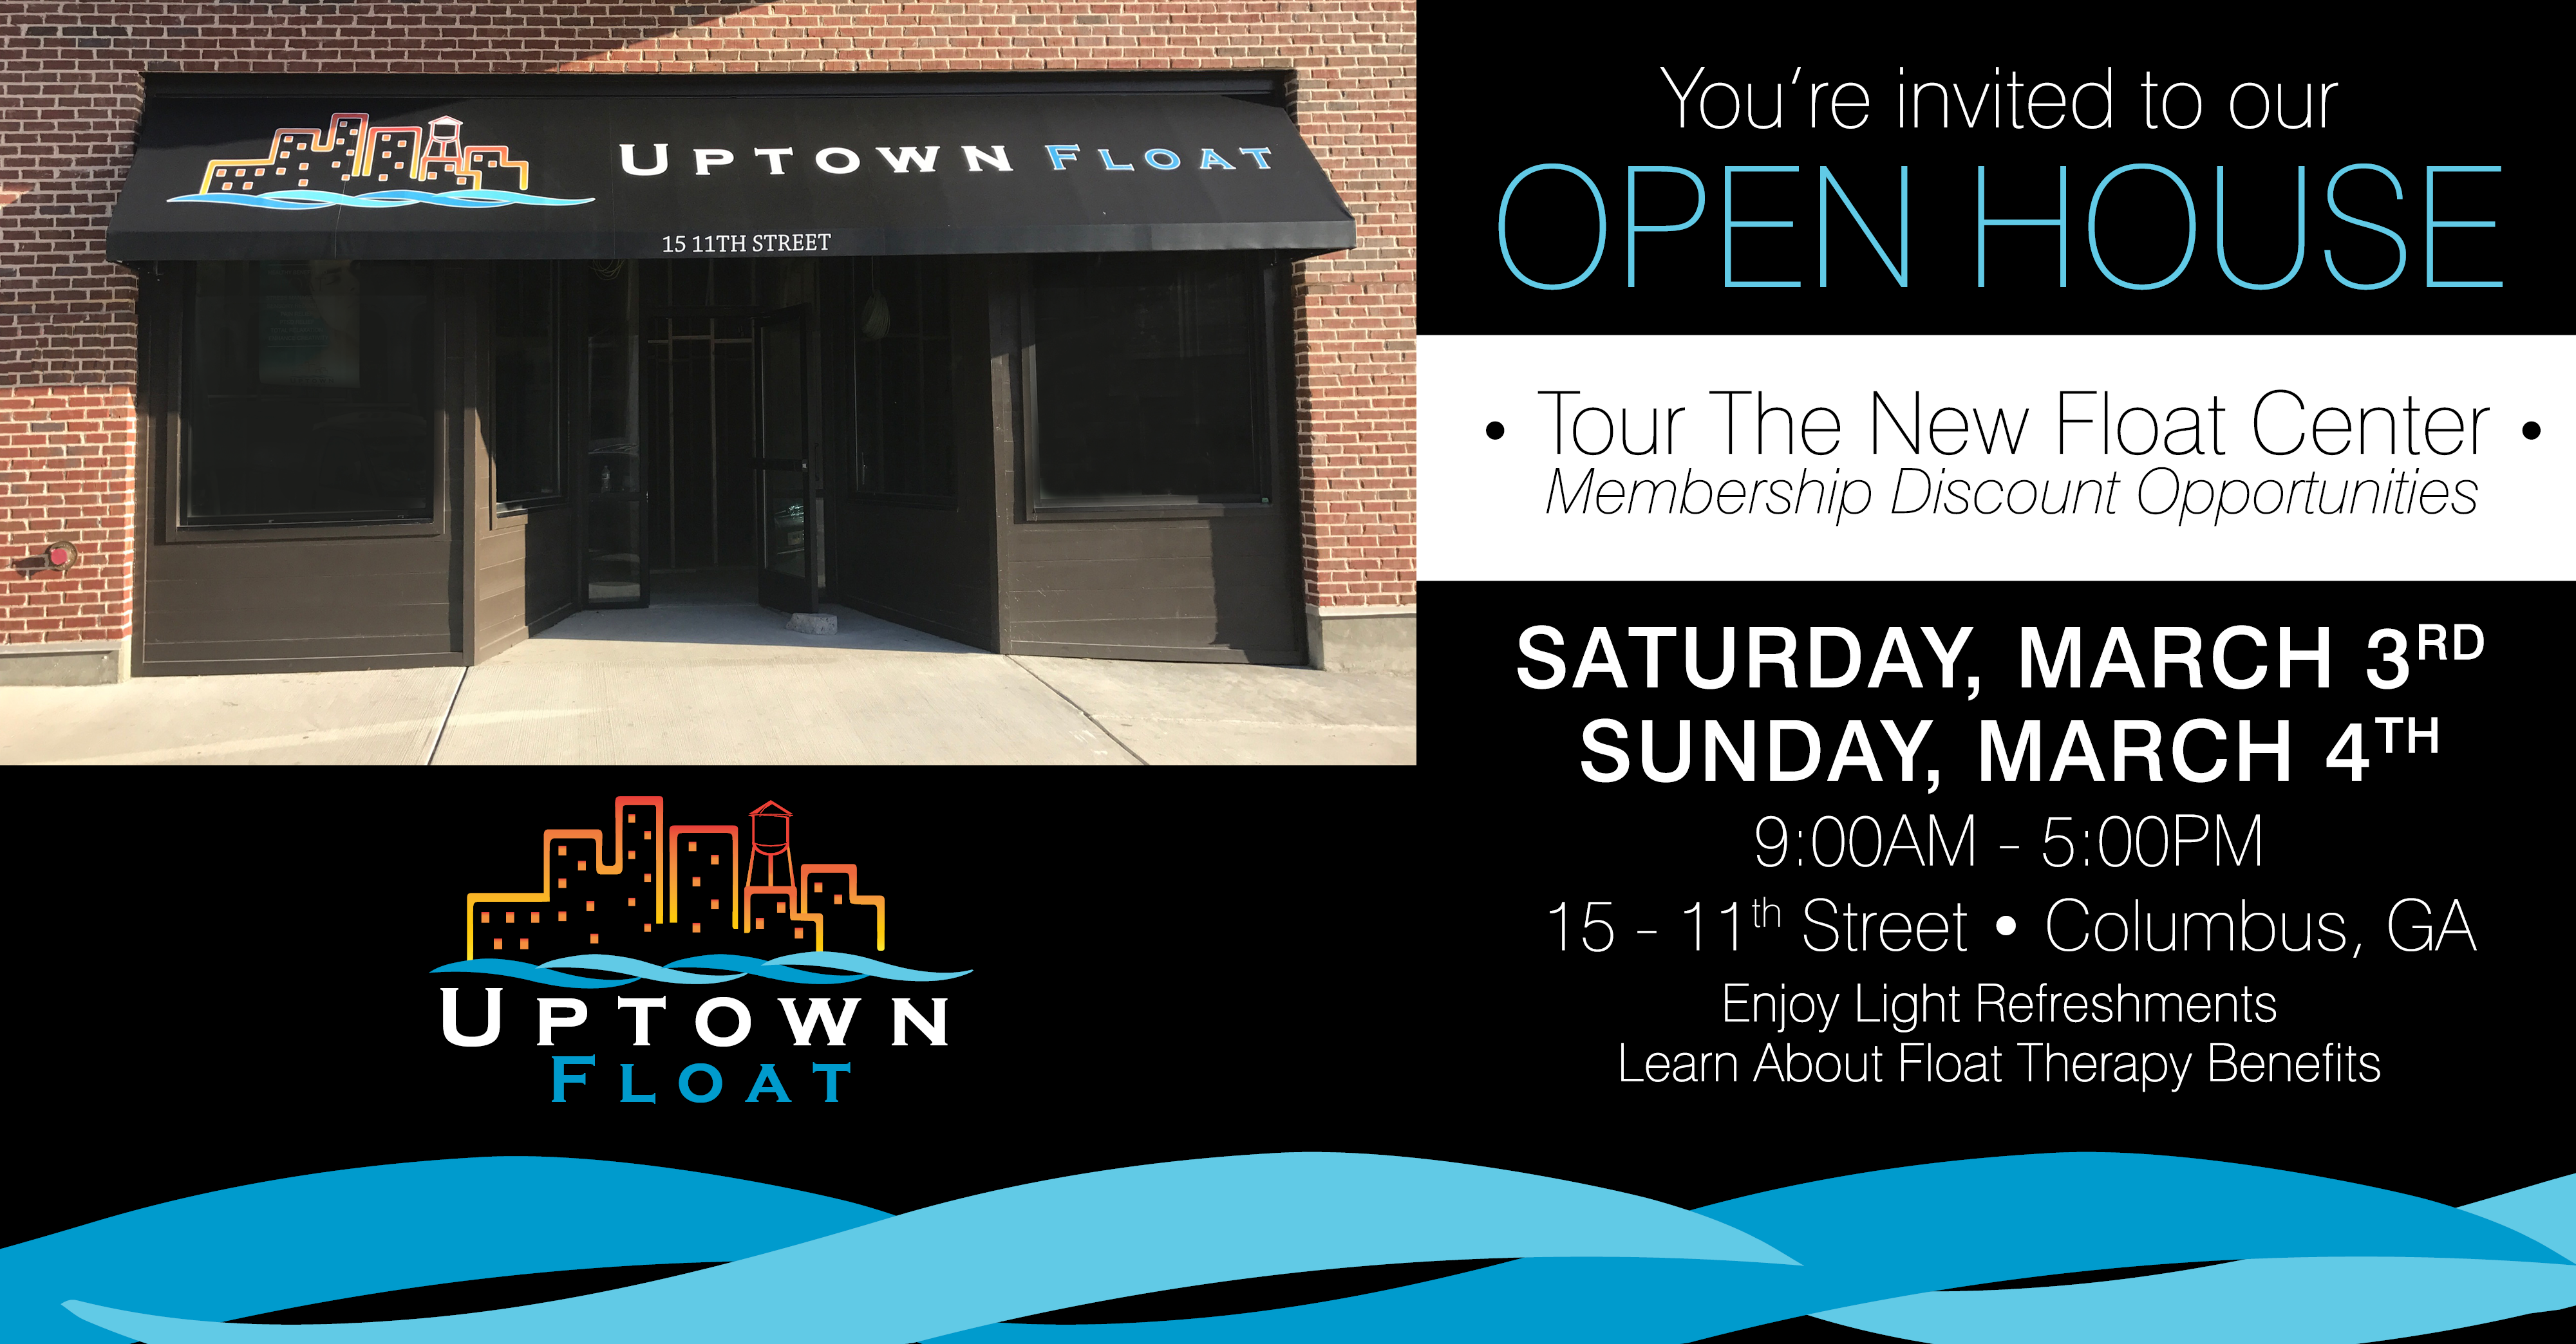 Open House Tours of Uptown Float